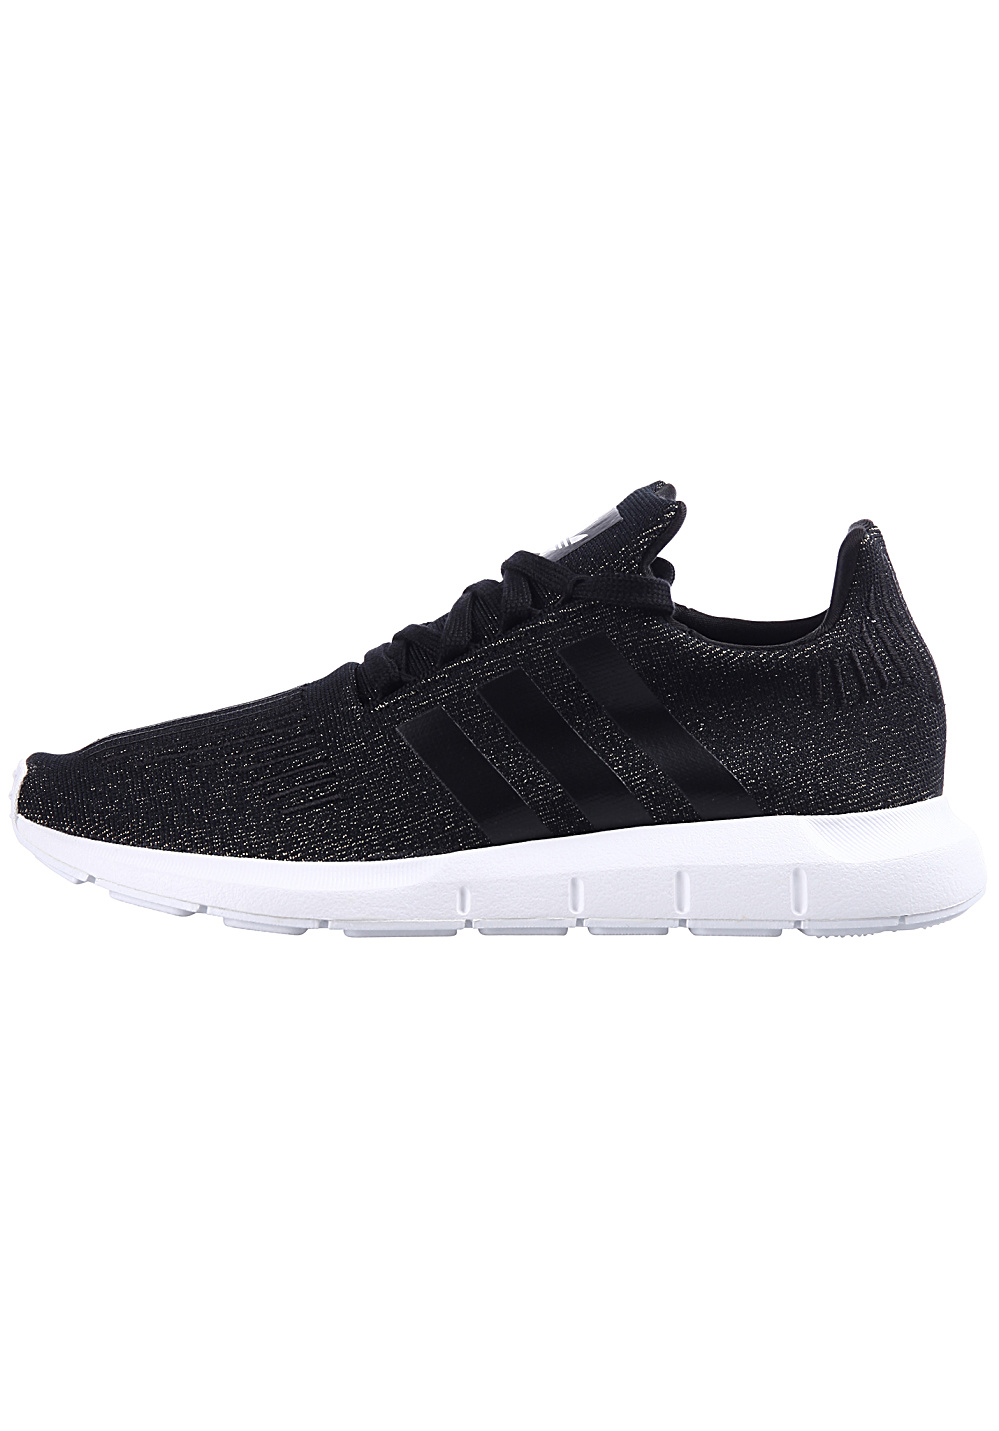 great deals fashion styles low price sale ADIDAS ORIGINALS Swift Run - Sneakers for Women - Black